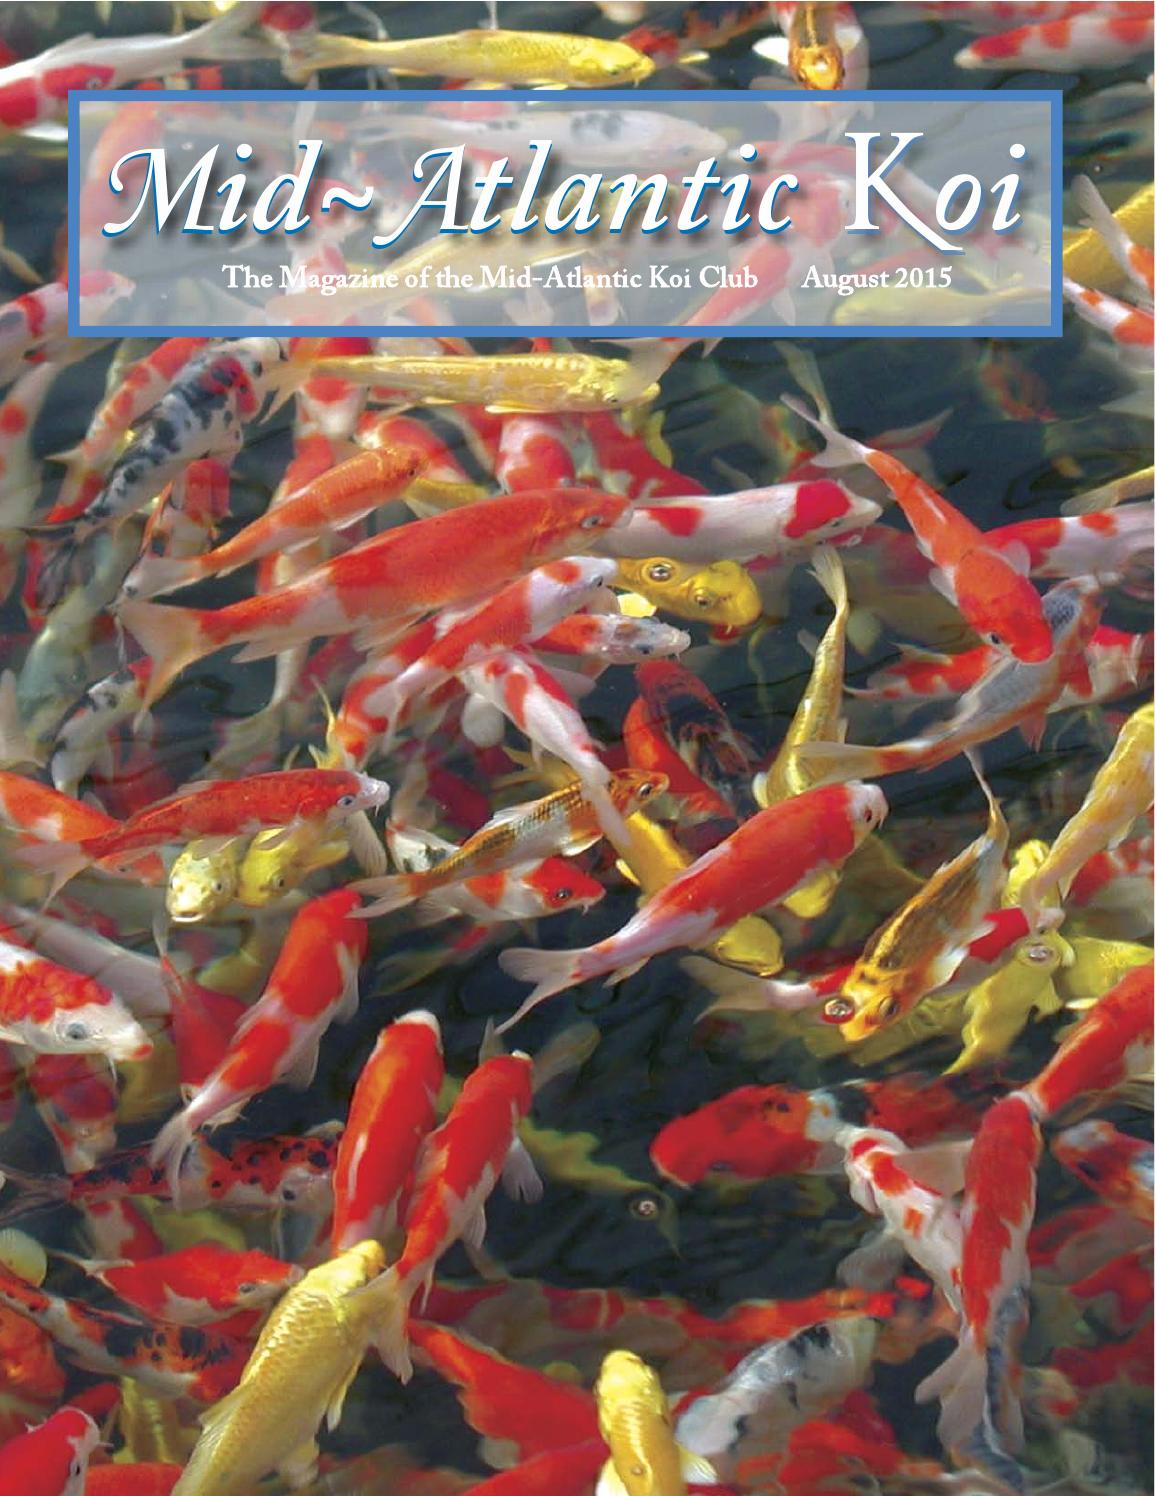 Mid-Atlantic Koi Magazine August 2015 by Cindy Graham - issuu